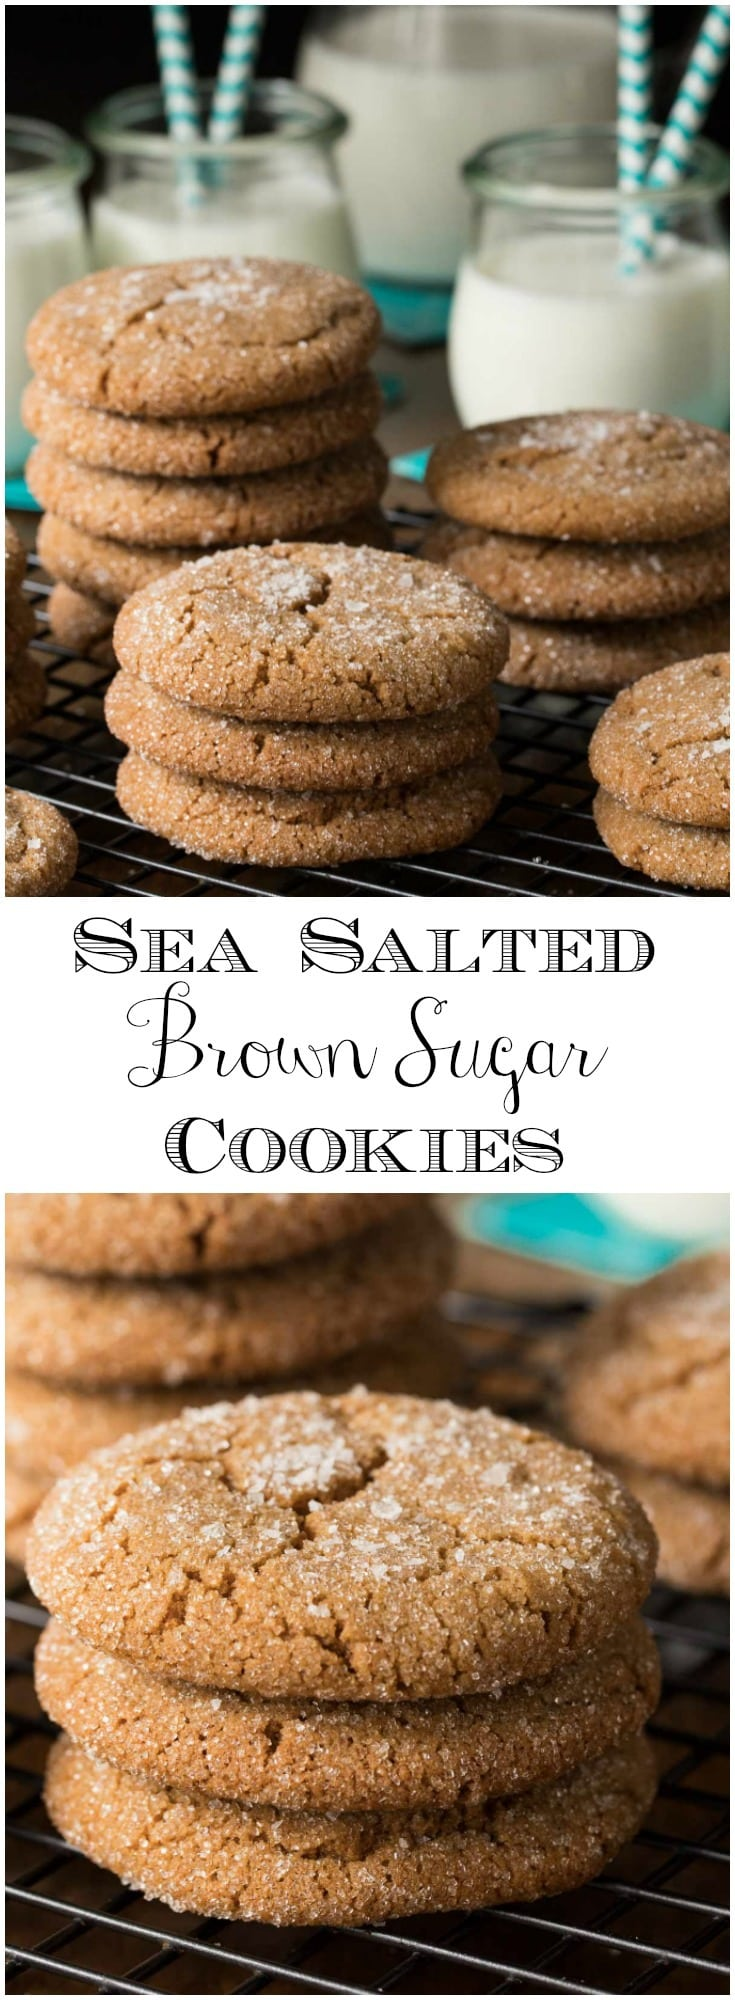 These delicious, one-bowl, no-mixer Sea Salted Brown Sugar Cookies have crispy edges and moist chewy centers!